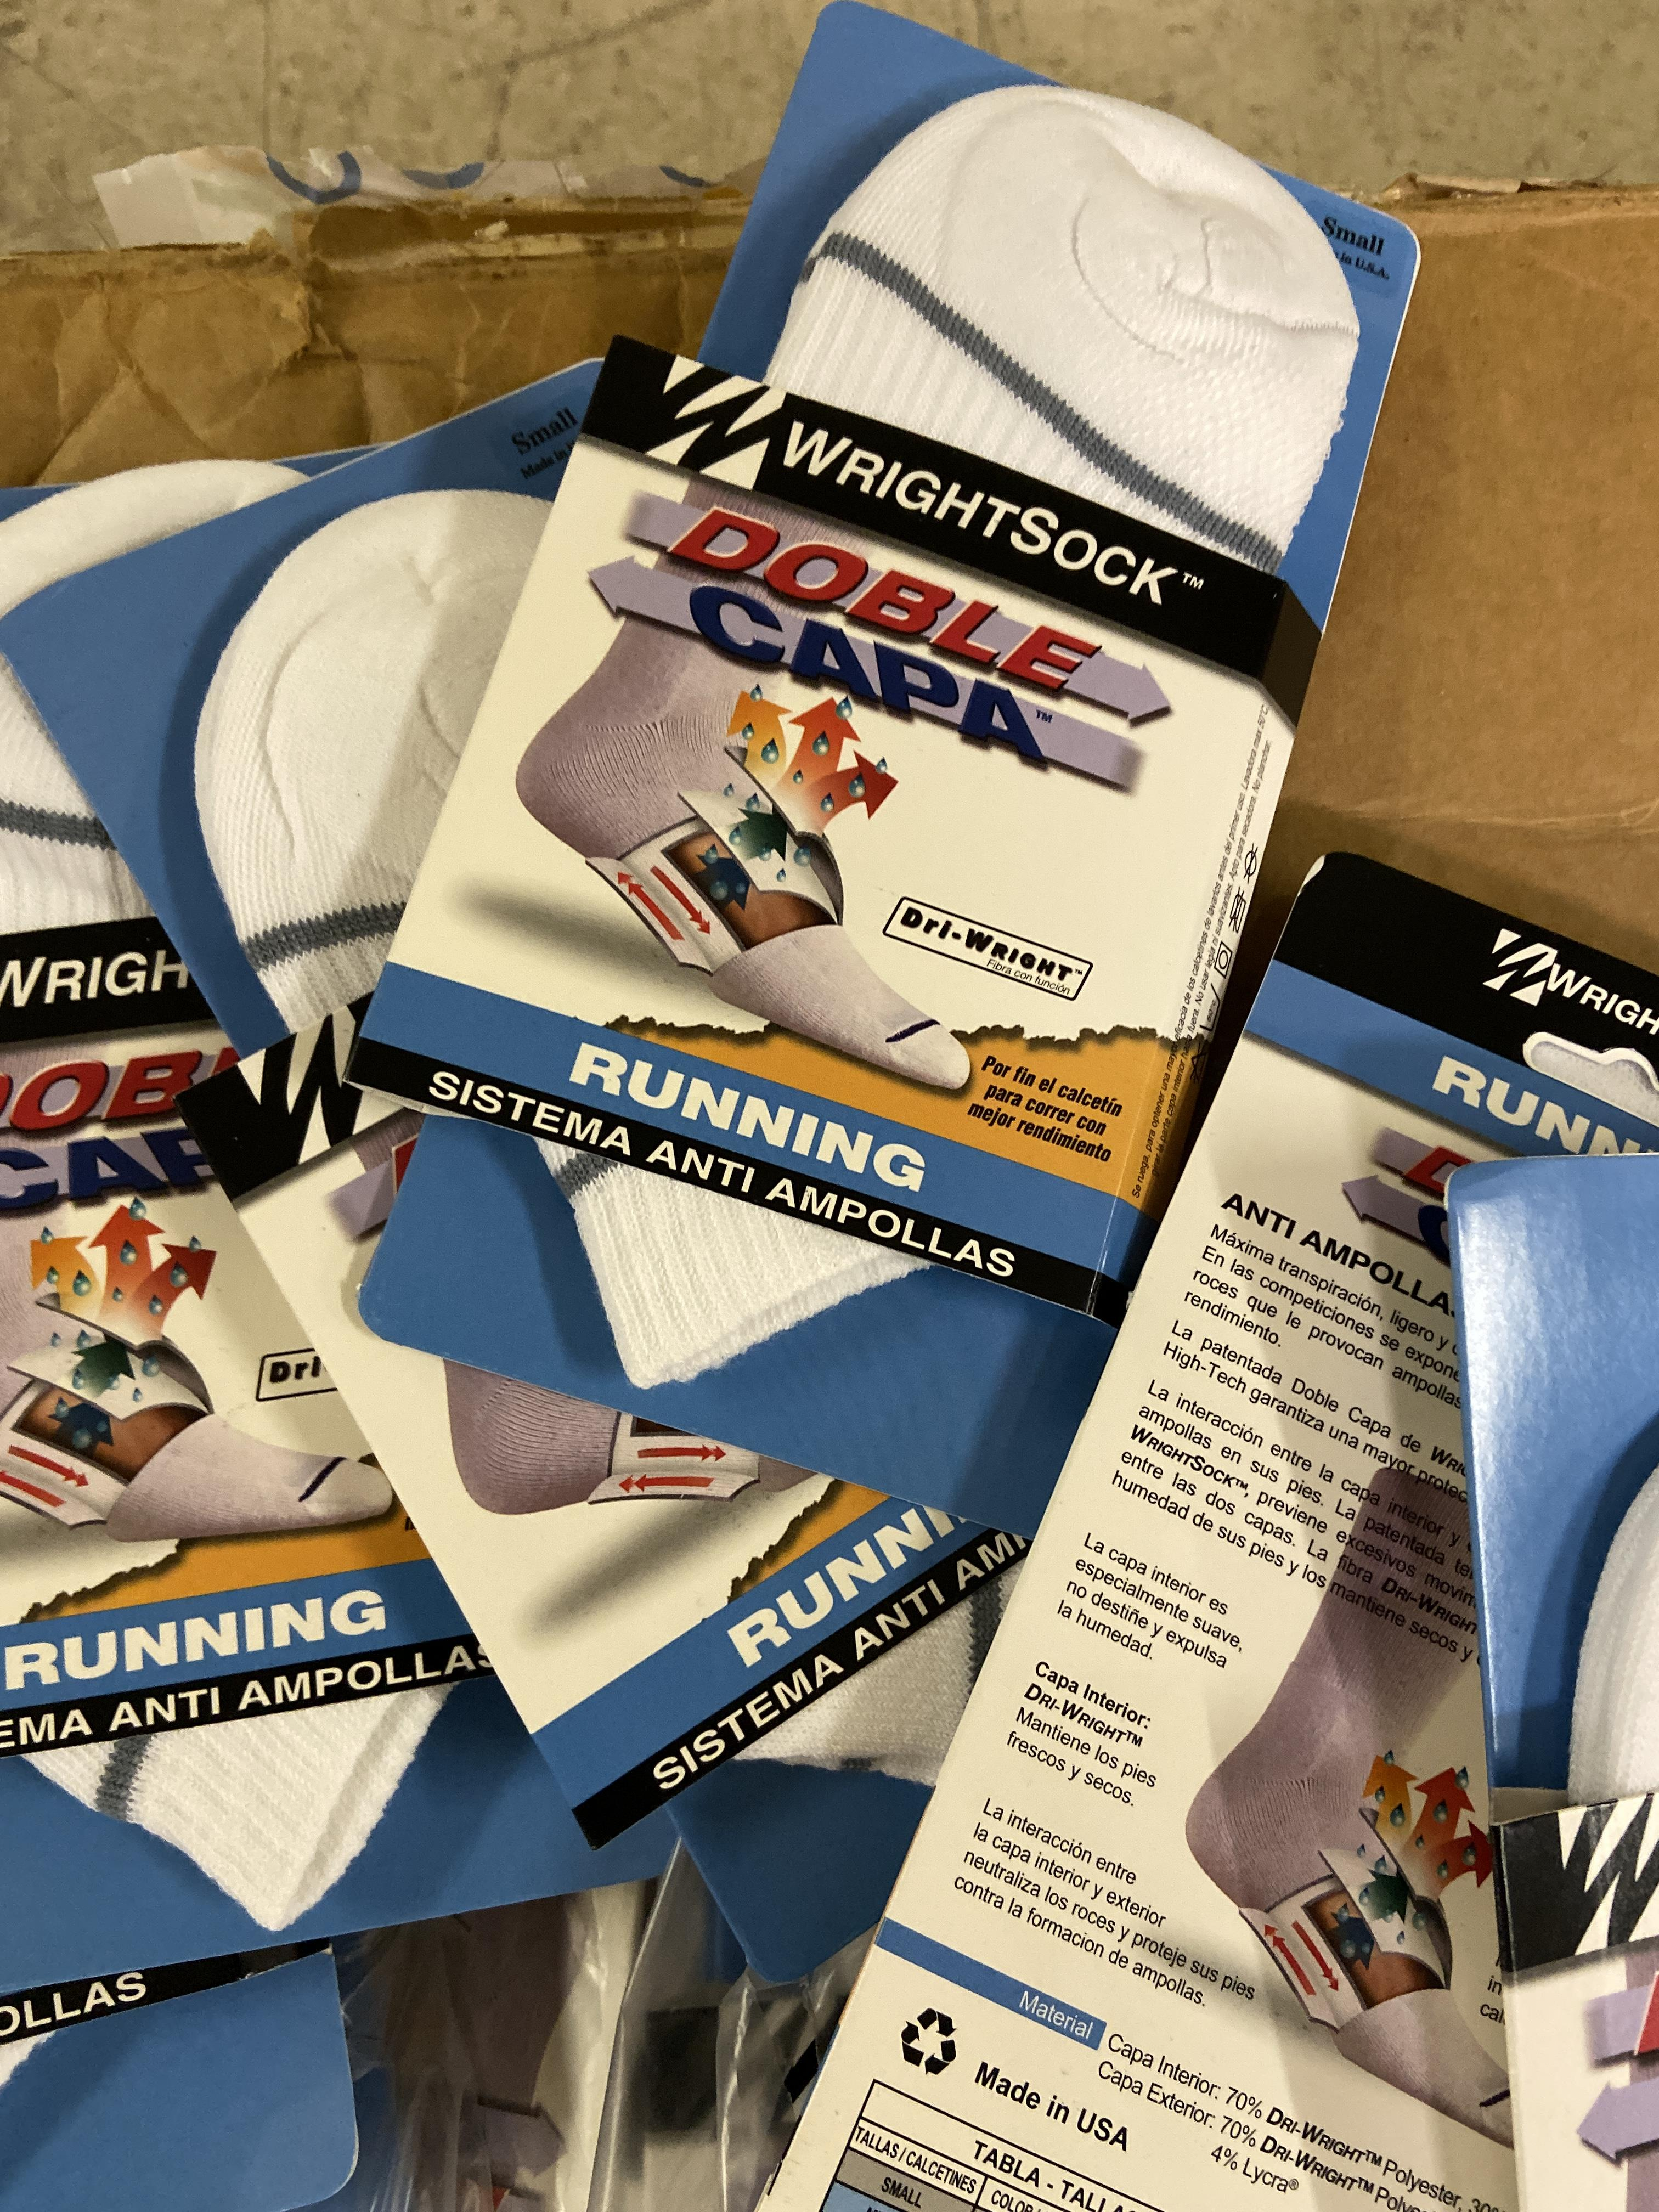 Lot 9 - 250+ packs of New Socks, Wrightsock Running, Double Layer, White with Gray Stripe Lot has approx 250